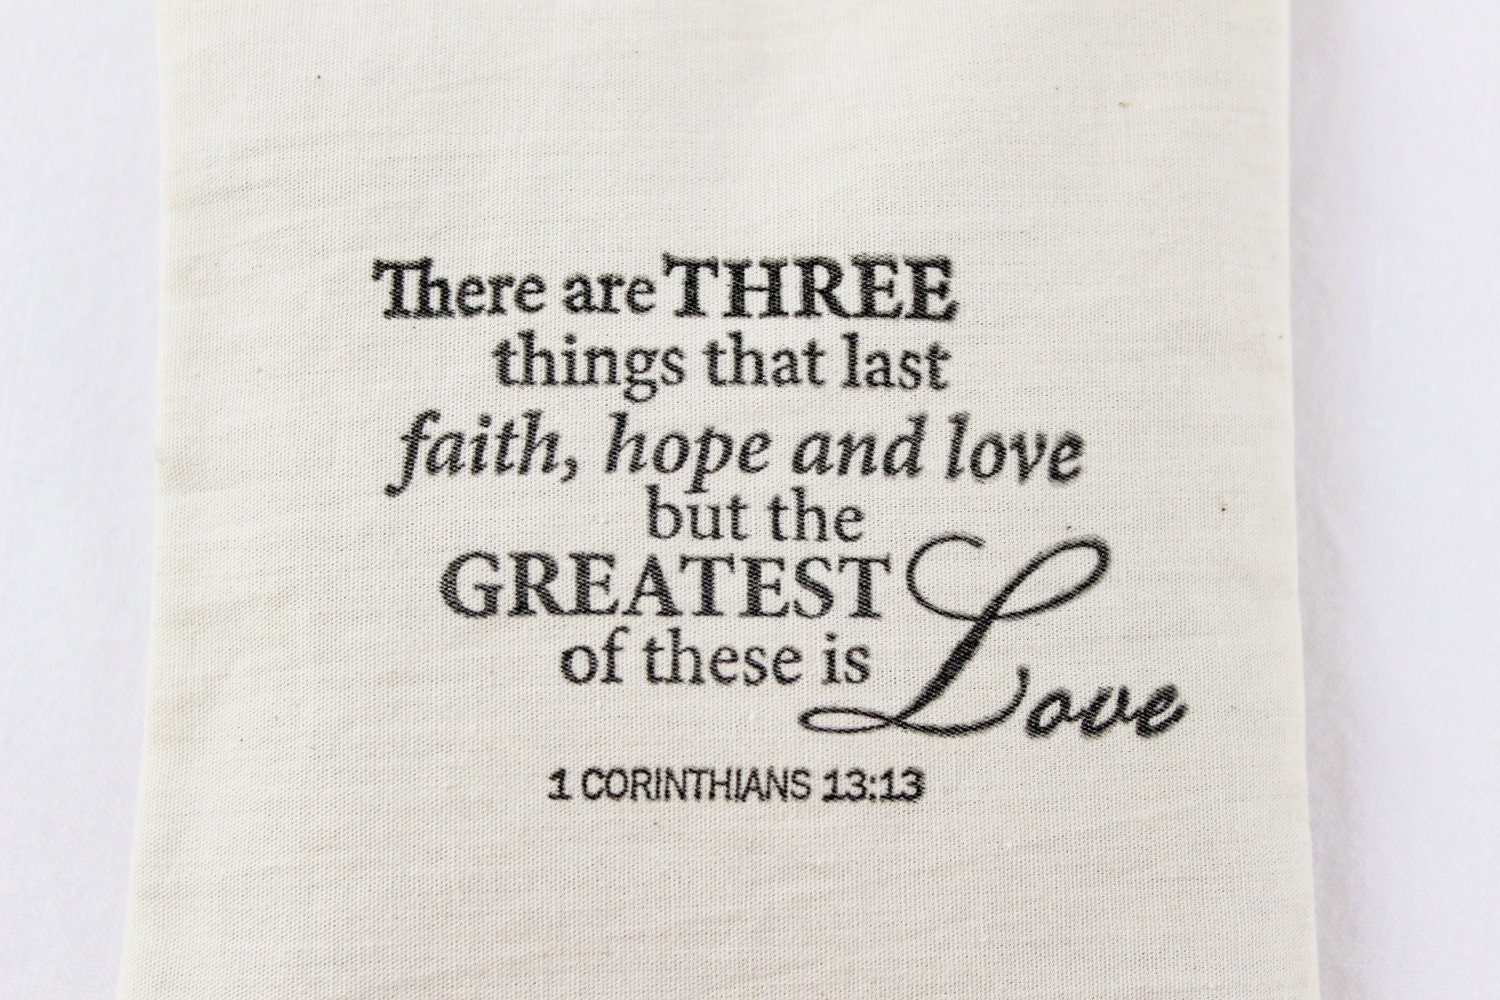 Christian Marriage Quotes Faith Hope Love Lavender Sachet 1 Corinthians 13 Bible Verse